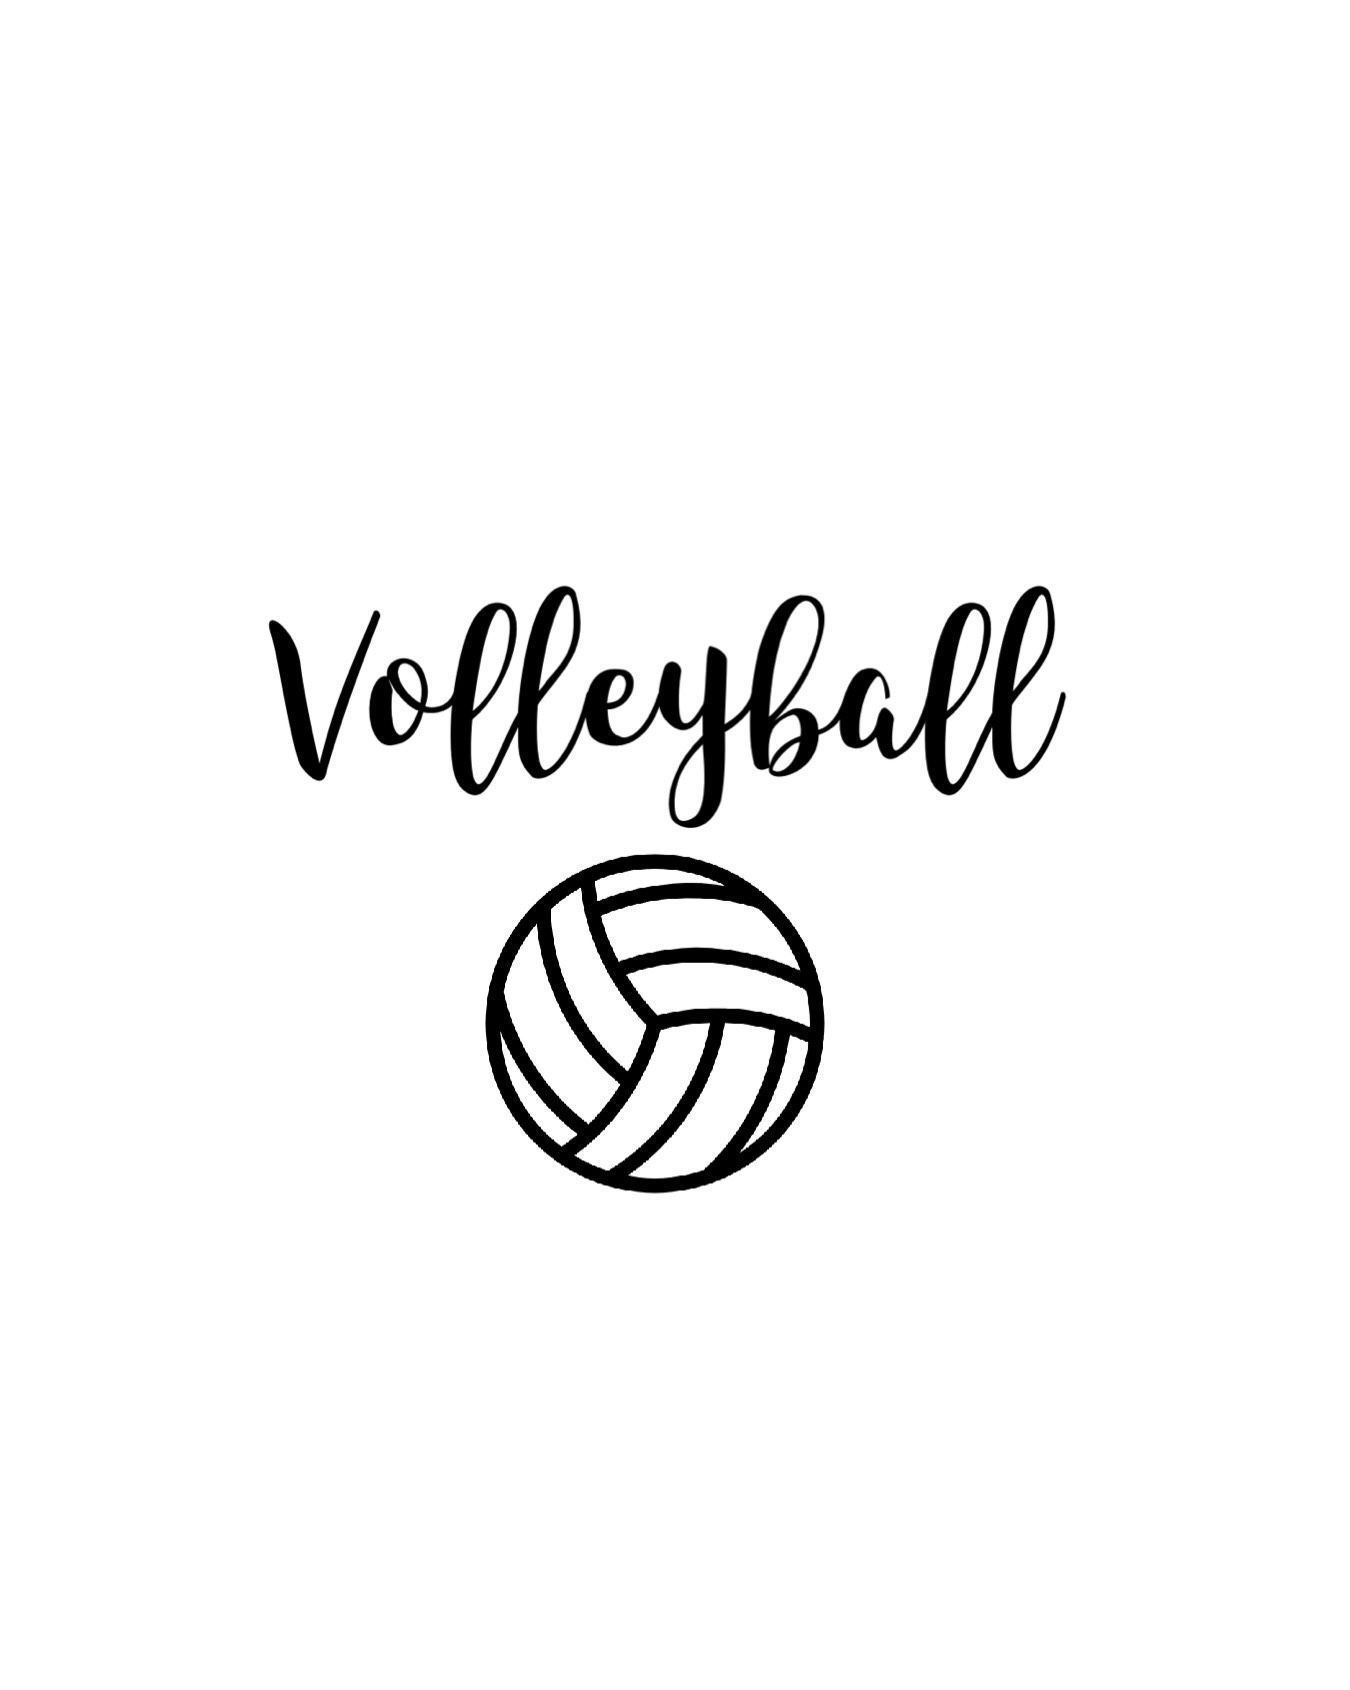 73 Wallpaper Motivation Wallpaper Volleyball Quotes Fashionmodel Fashiondaily Fashionbags Fas In 2020 Volleyball Wallpaper Volleyball Drawing Volleyball Backgrounds